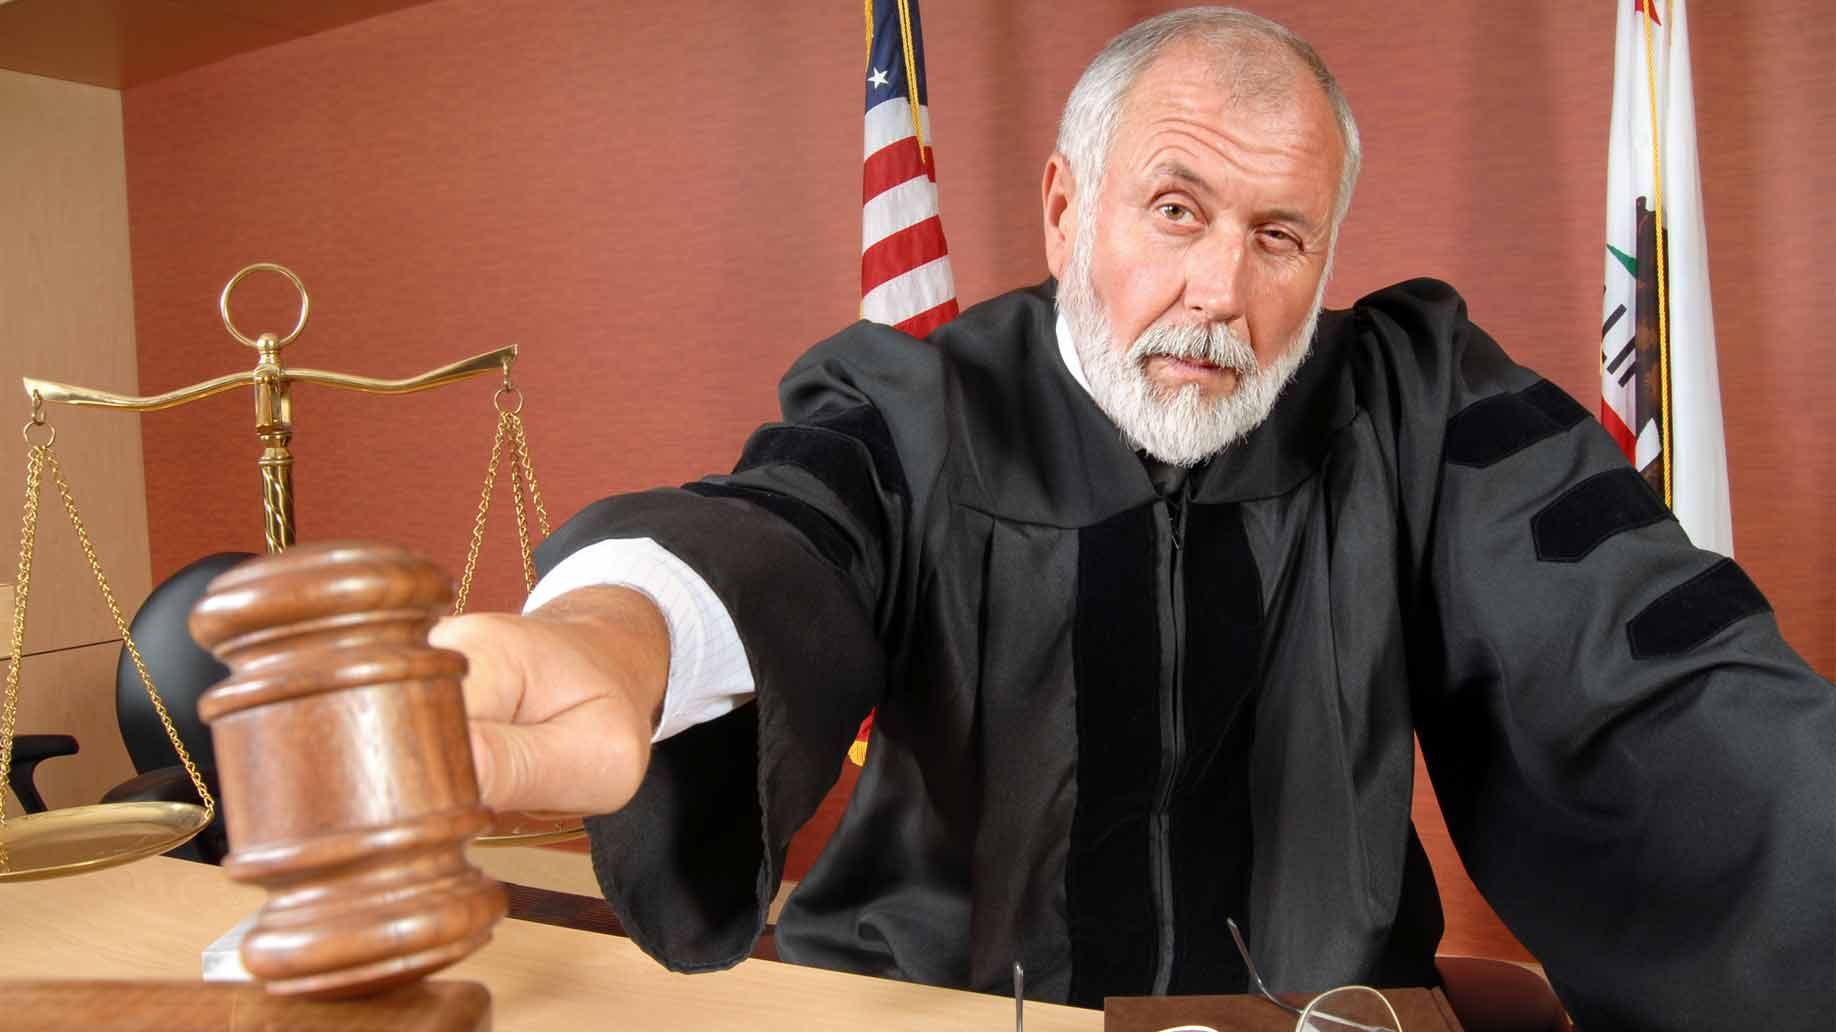 judge makes his ruling during a courtroom trial